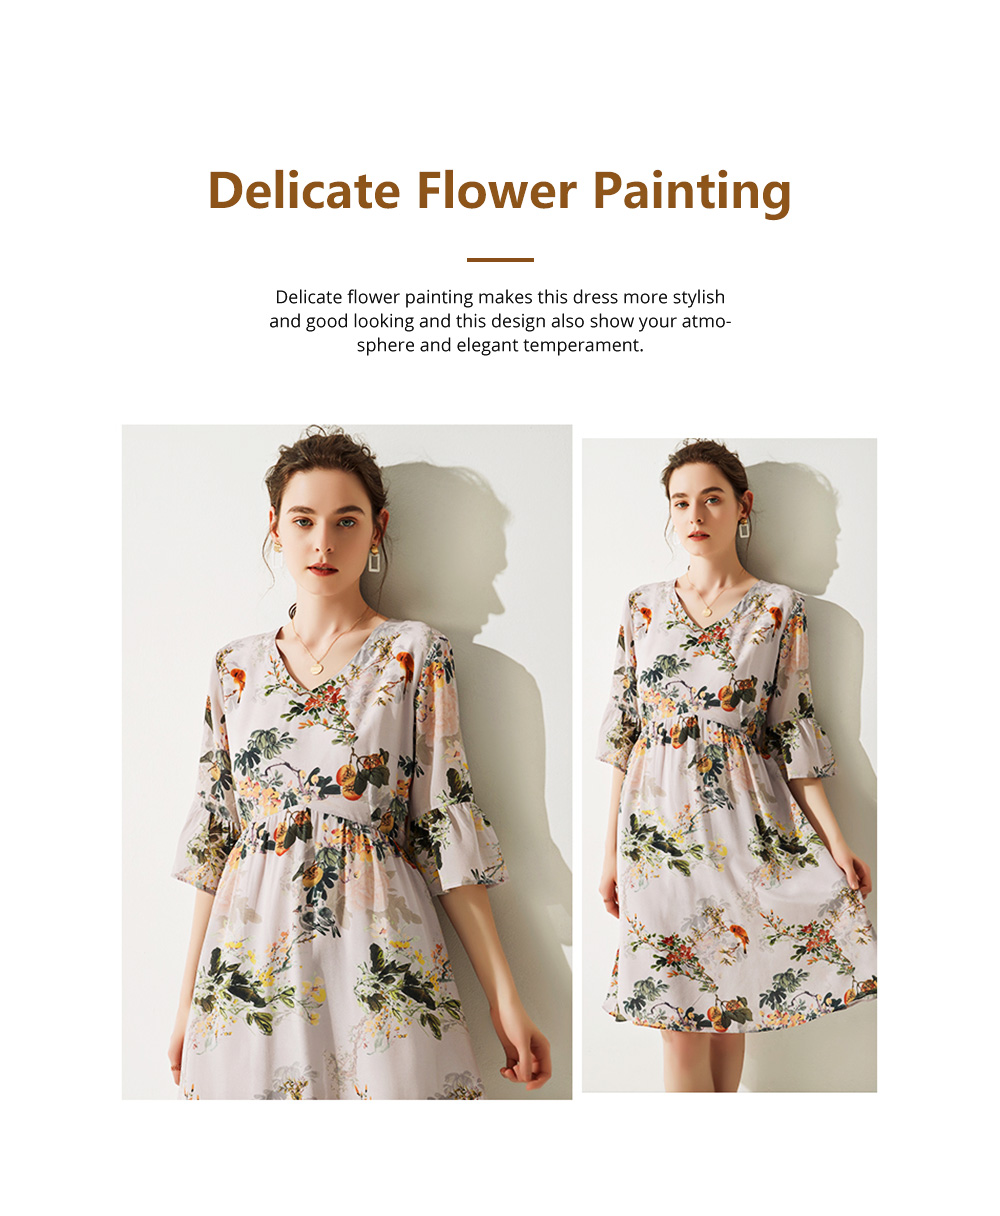 Elegant Fancy Stylish Flower Painting V-neck High-waist Three Quarter Falbala Sleeve Dress Atmosphere A-Type Ladies Dress 5